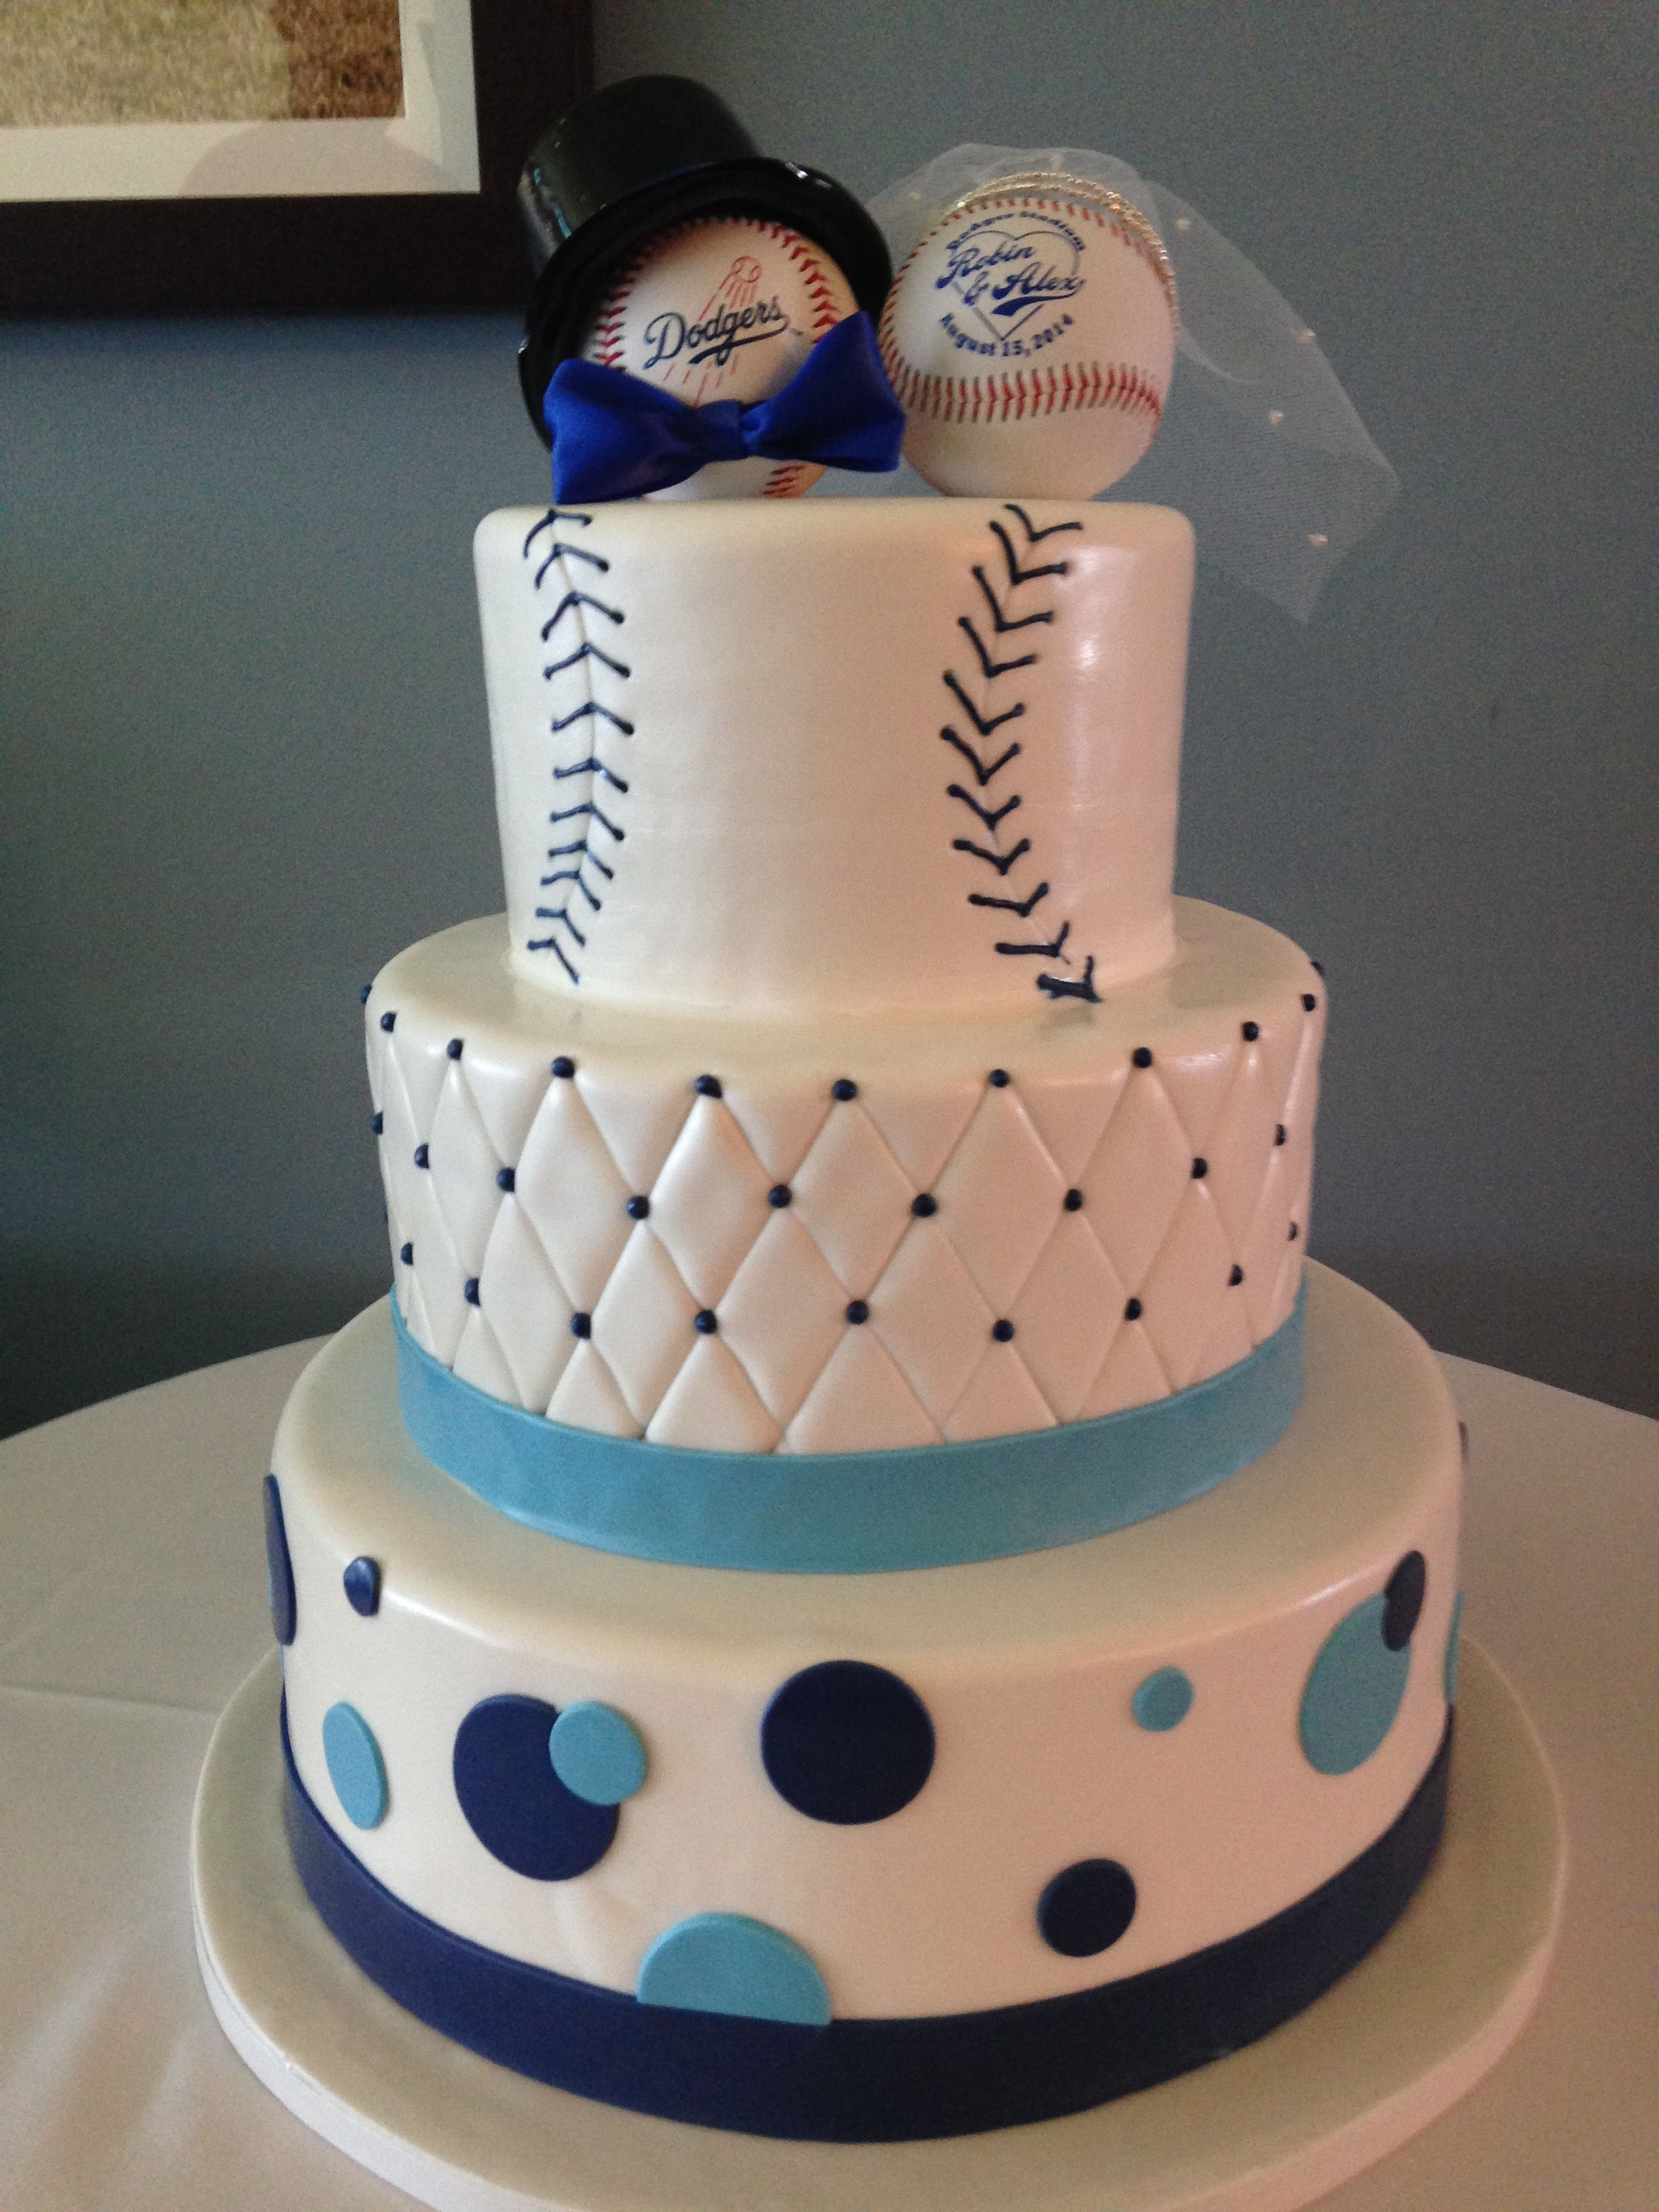 wedding cake toppers baseball theme la dodger theme wedding cake with baseball toppers 26390